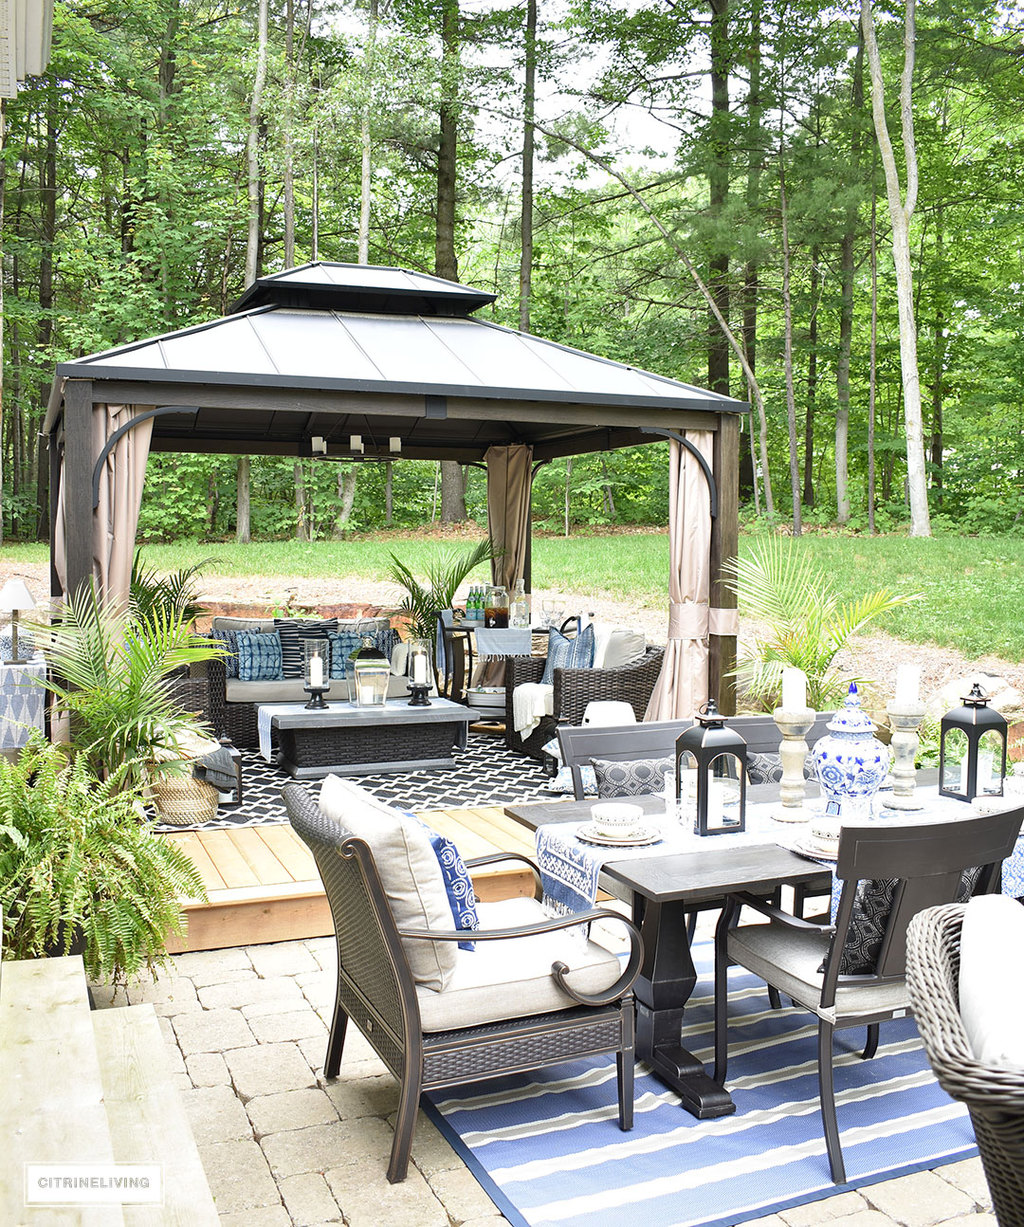 Outdoor patio makeover with large gazebo, dining area and lounge zone.